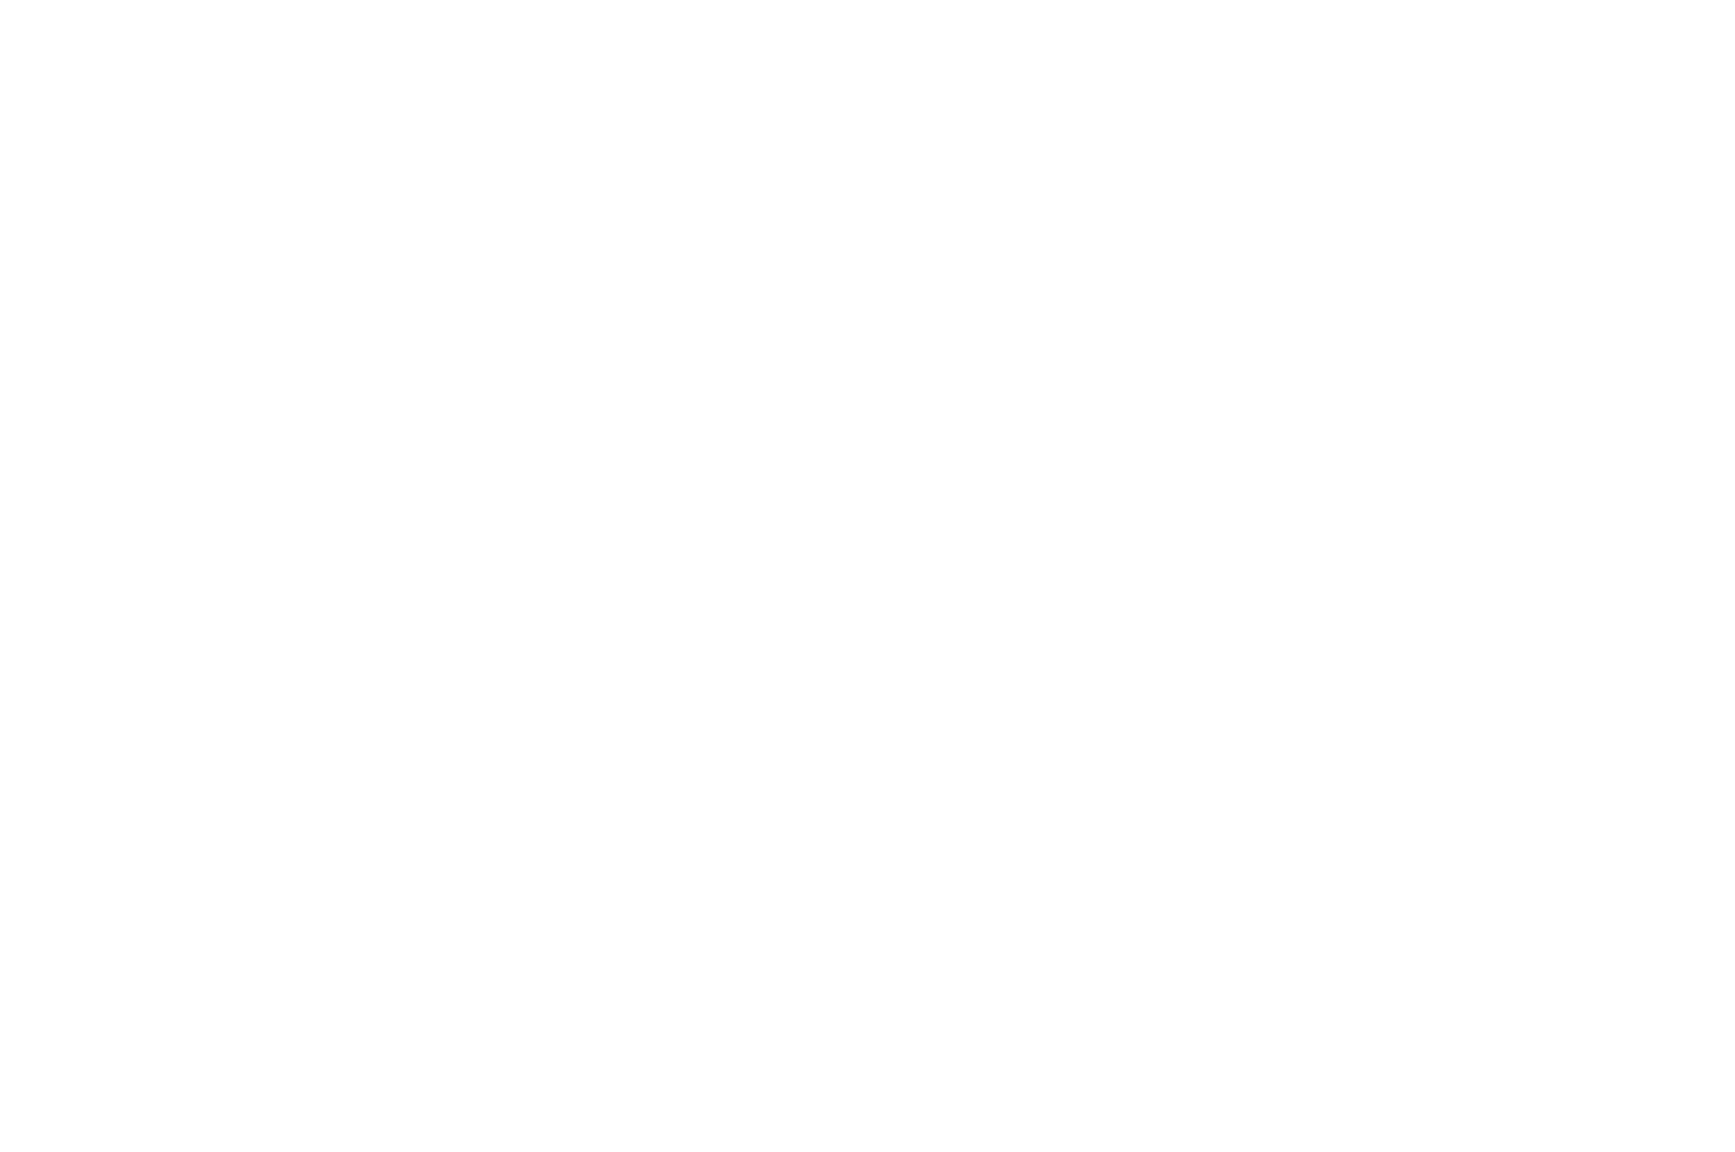 OFFICIAL SELECTION - Los Angeles Independent Film Festival Awards - 2016